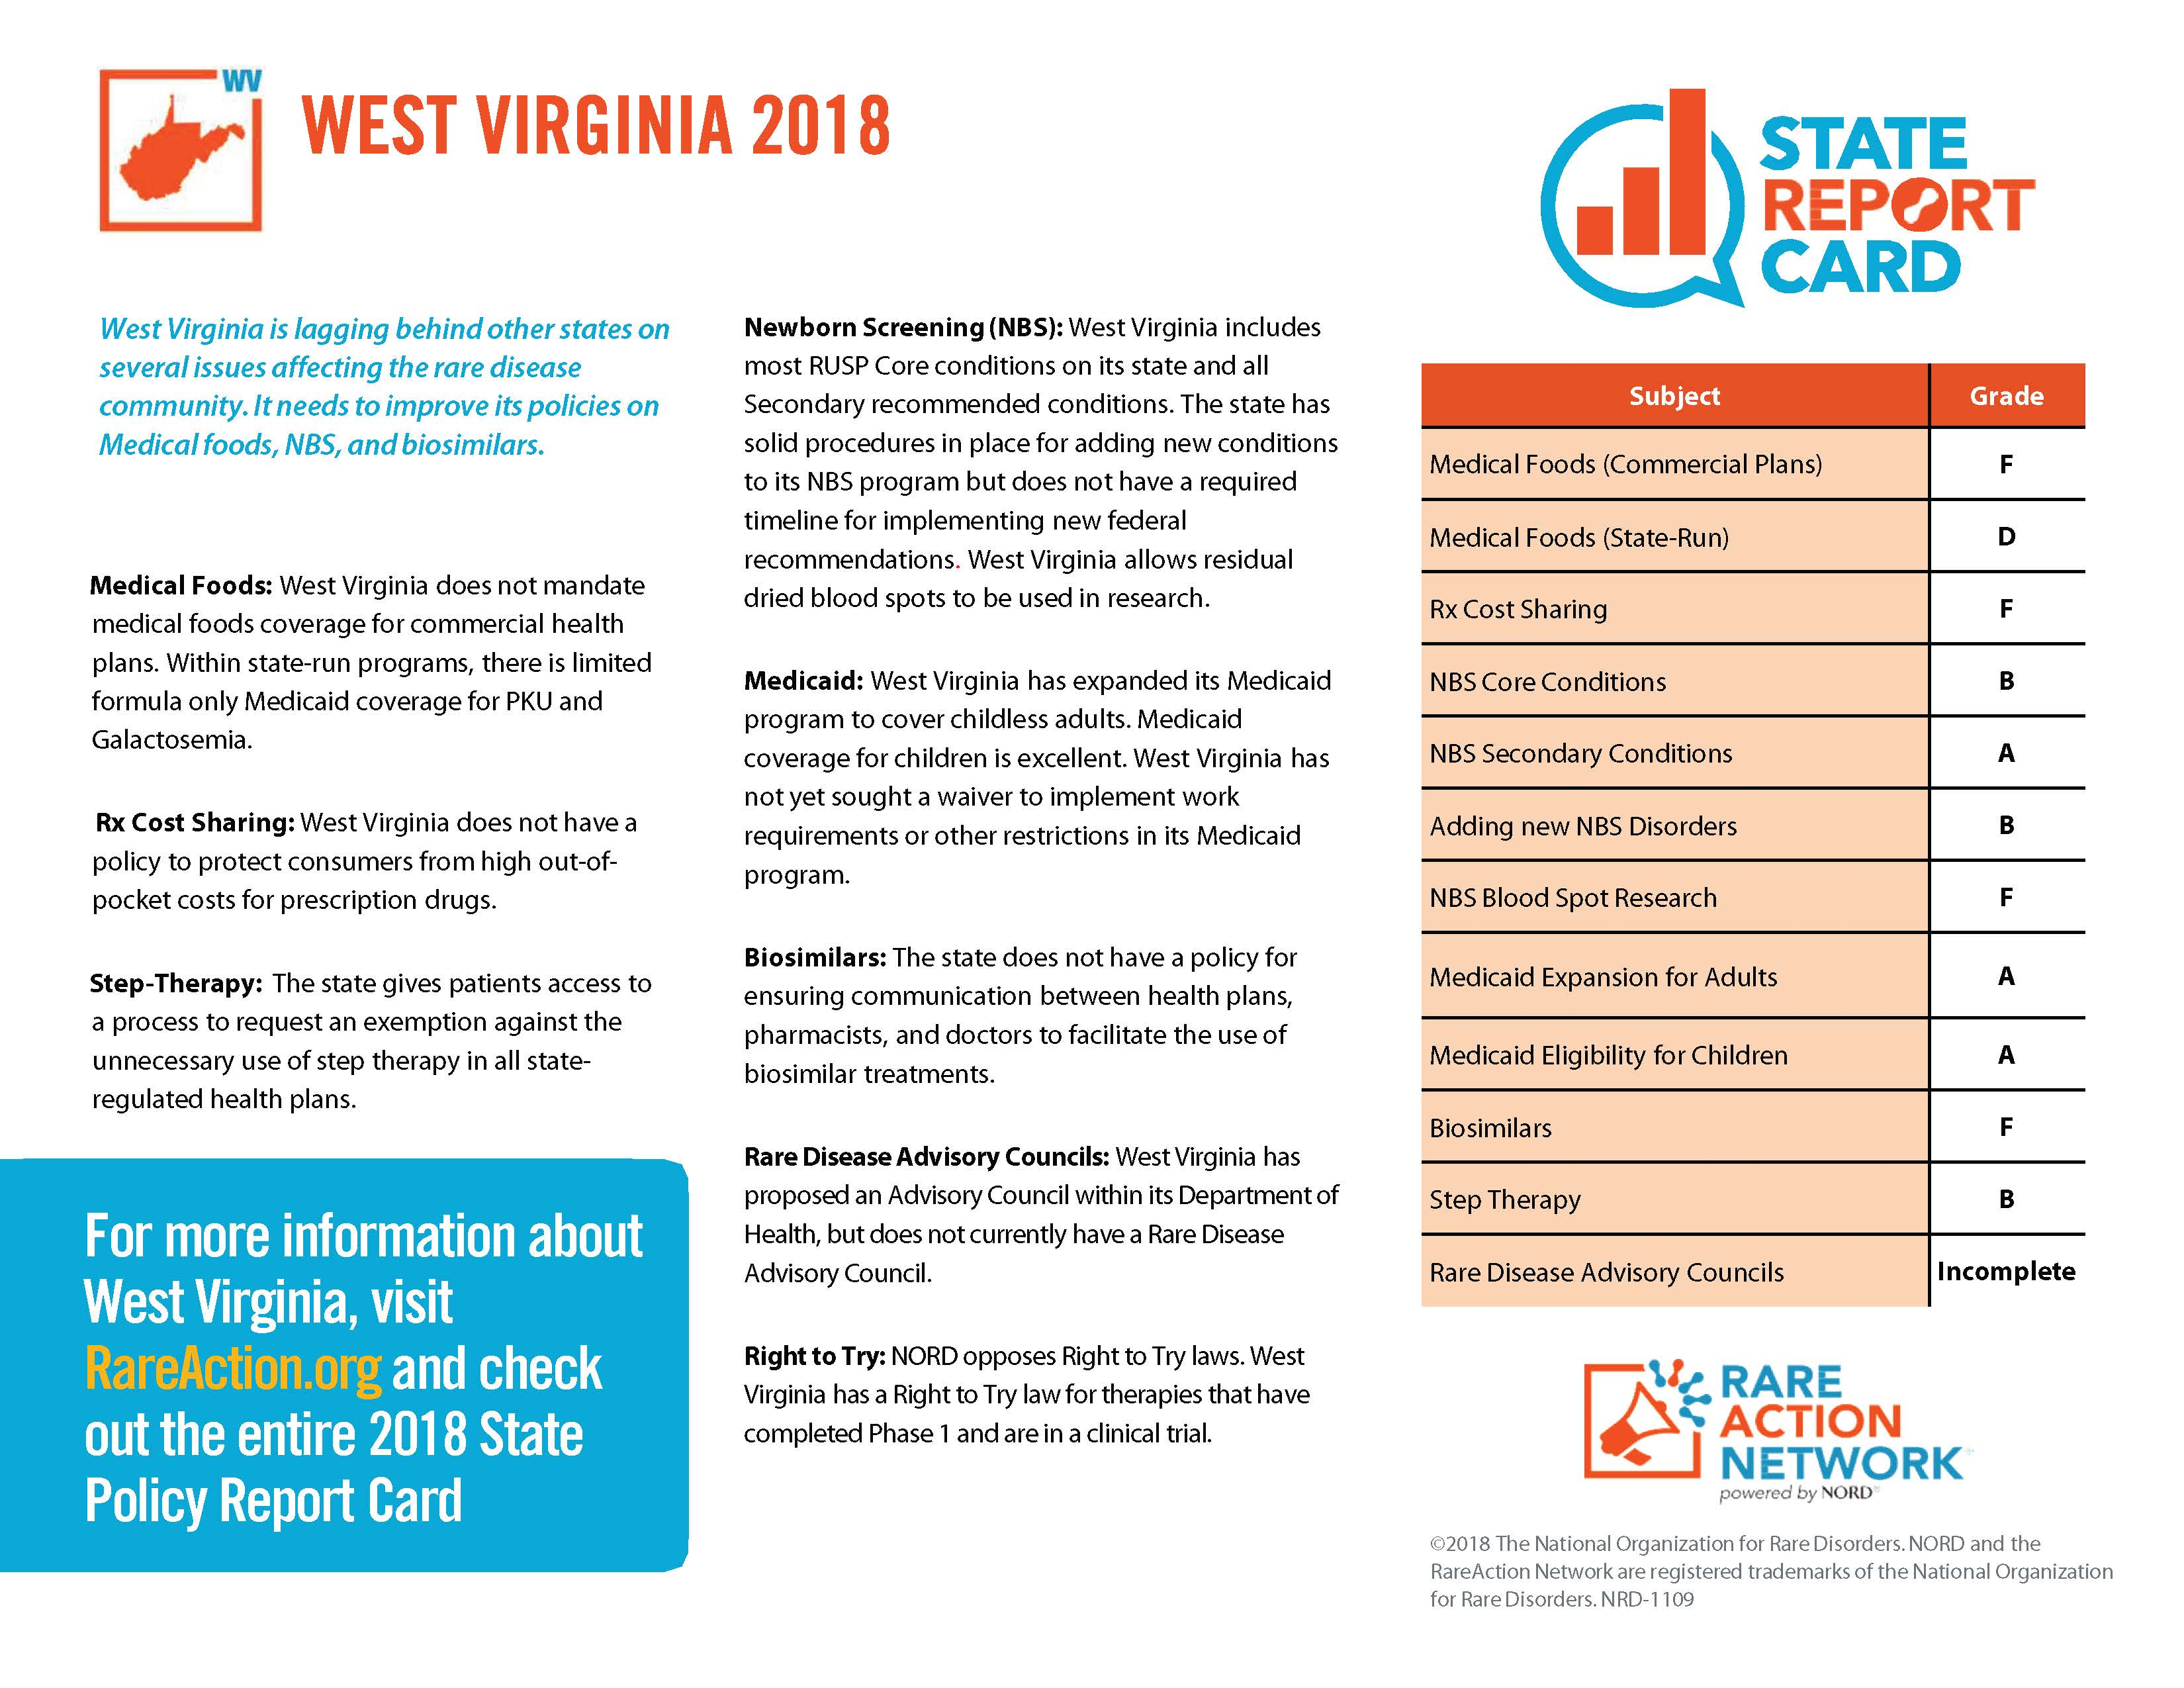 NORD State Report Card WV 2018